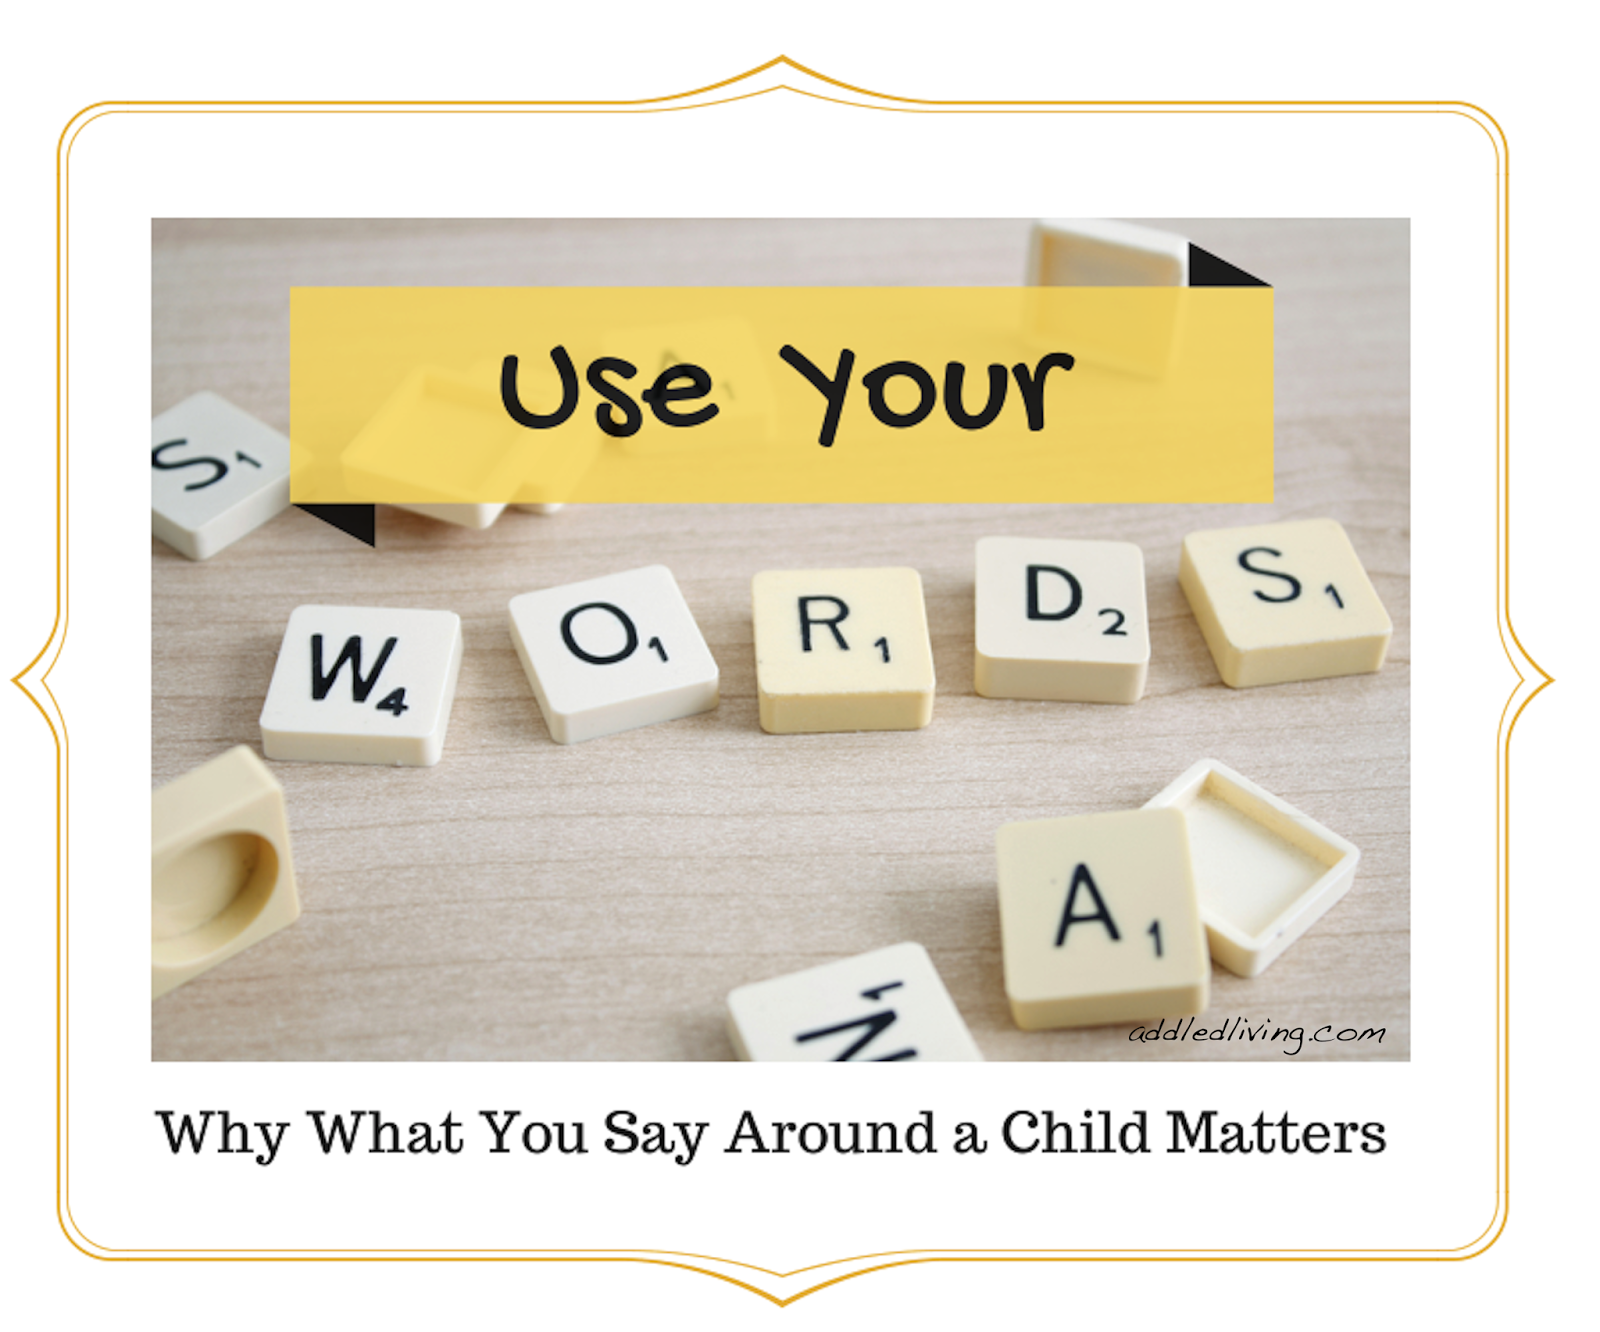 use-your-words-why-what-you-say-around-a-child-matters